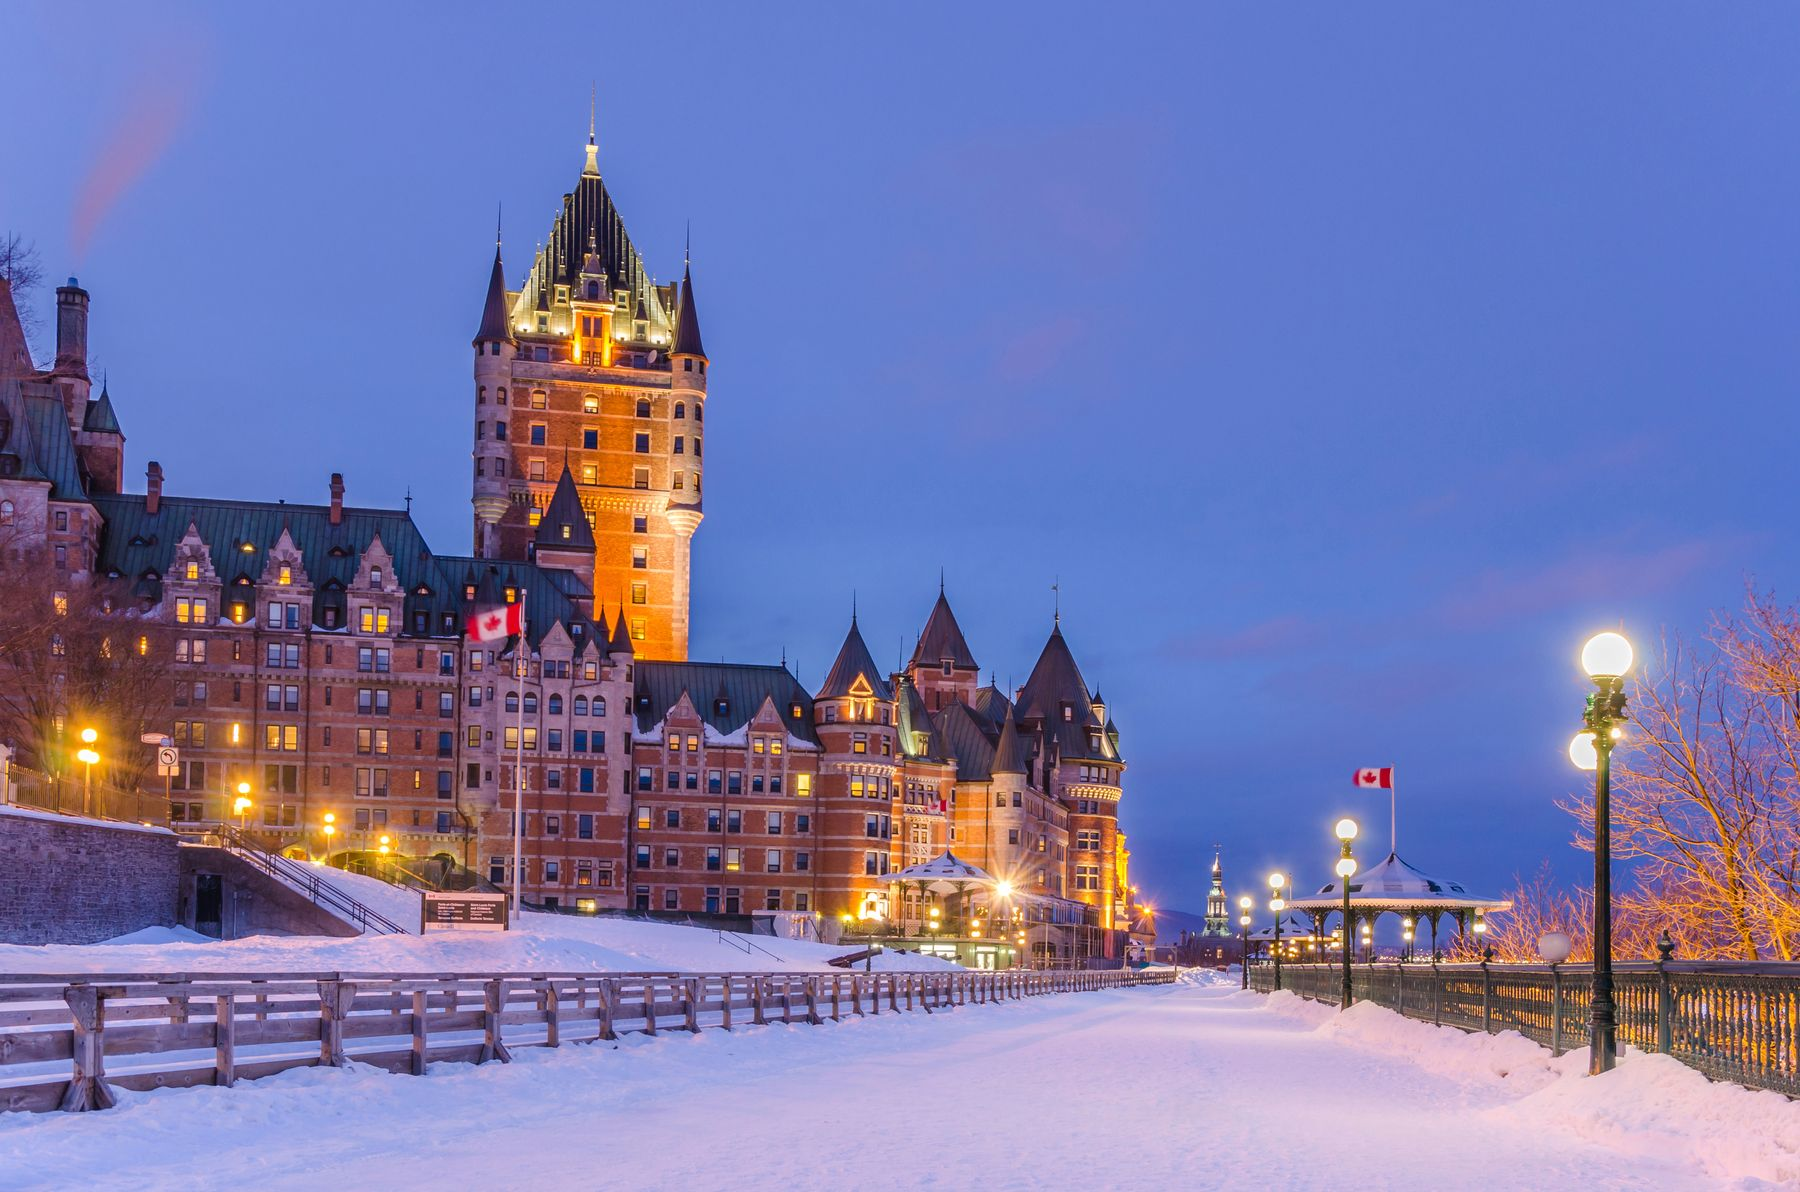 a picture of the Fairmont Château Frontenac lit up at night, a top destination for Christmas vacations